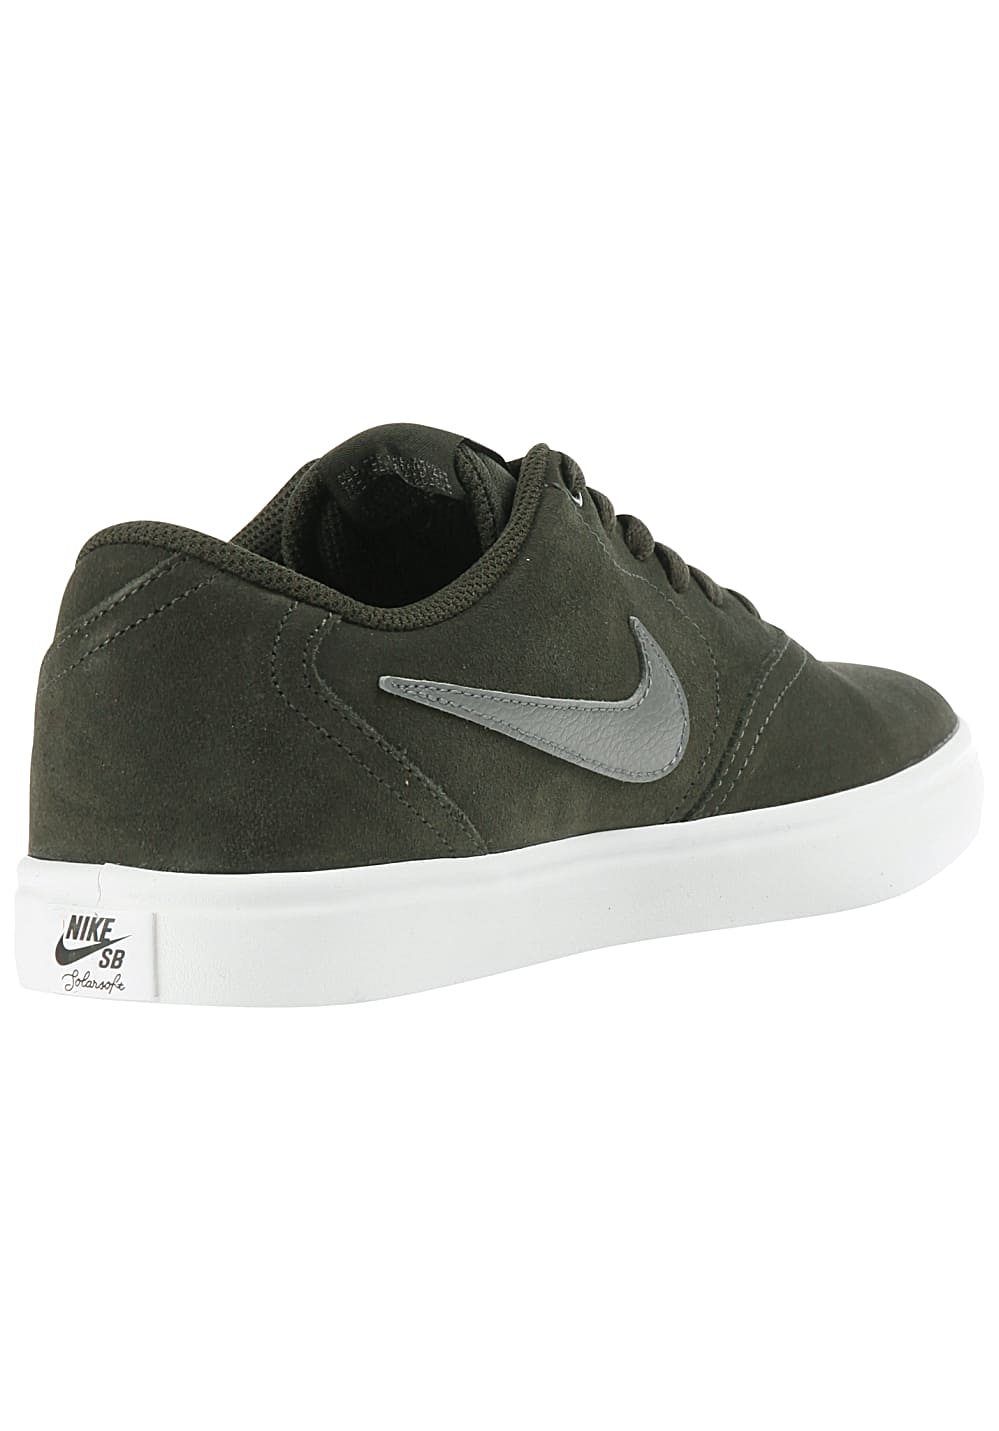 best service 07092 aef23 Next. NIKE SB. Check Solar - Sneakers for Men. €57.47. incl. VAT plus  shipping costs